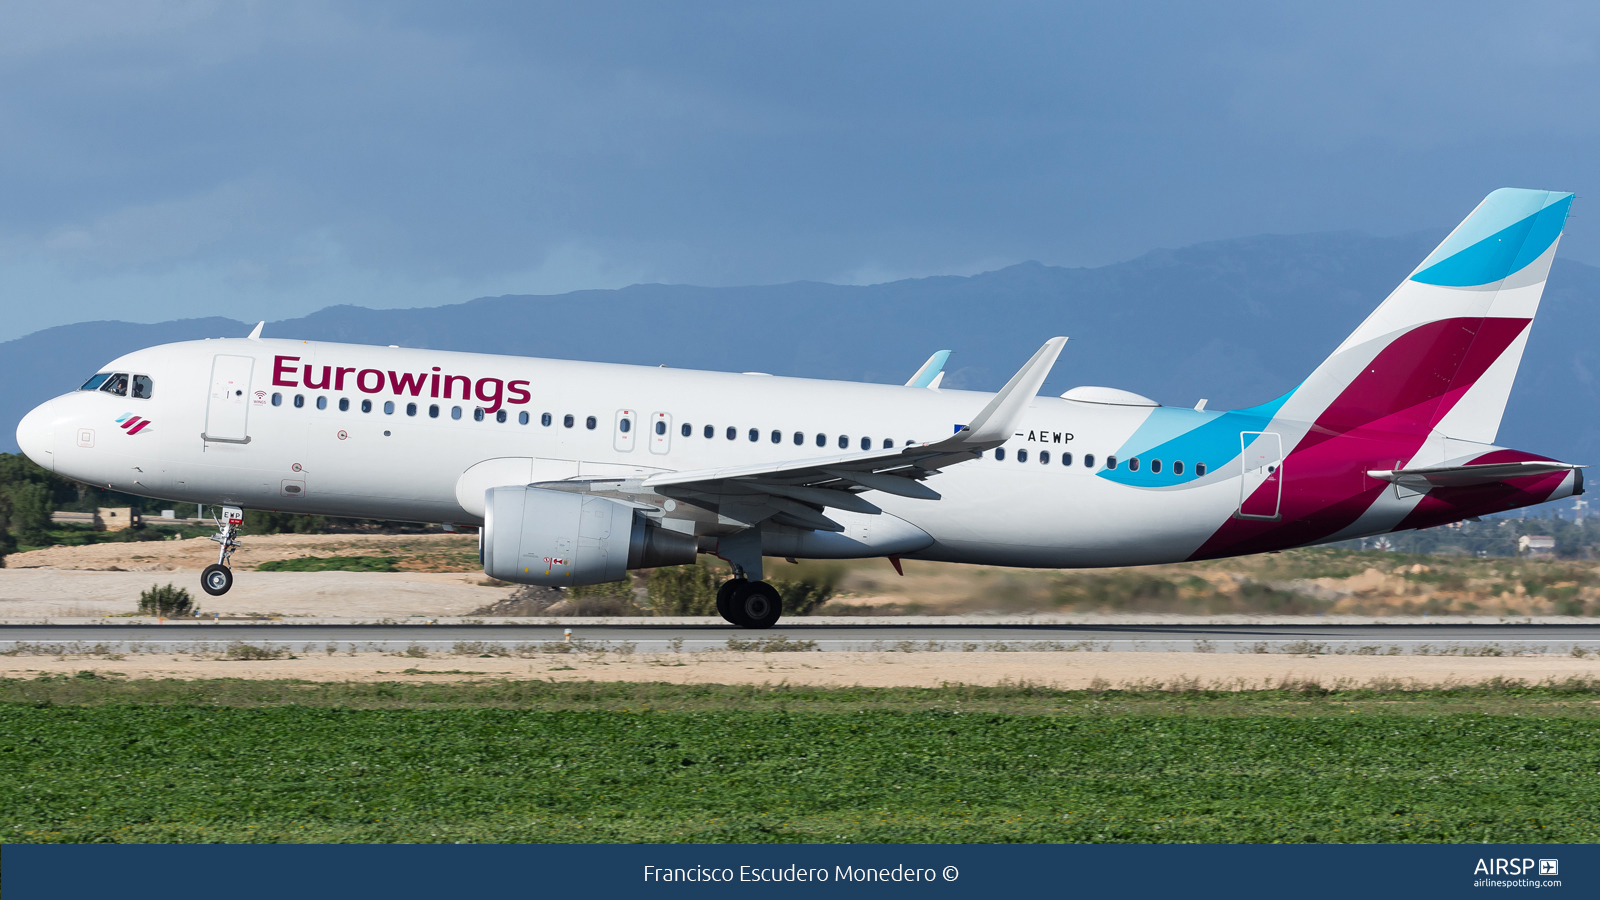 Eurowings  Airbus A320  D-AEWP